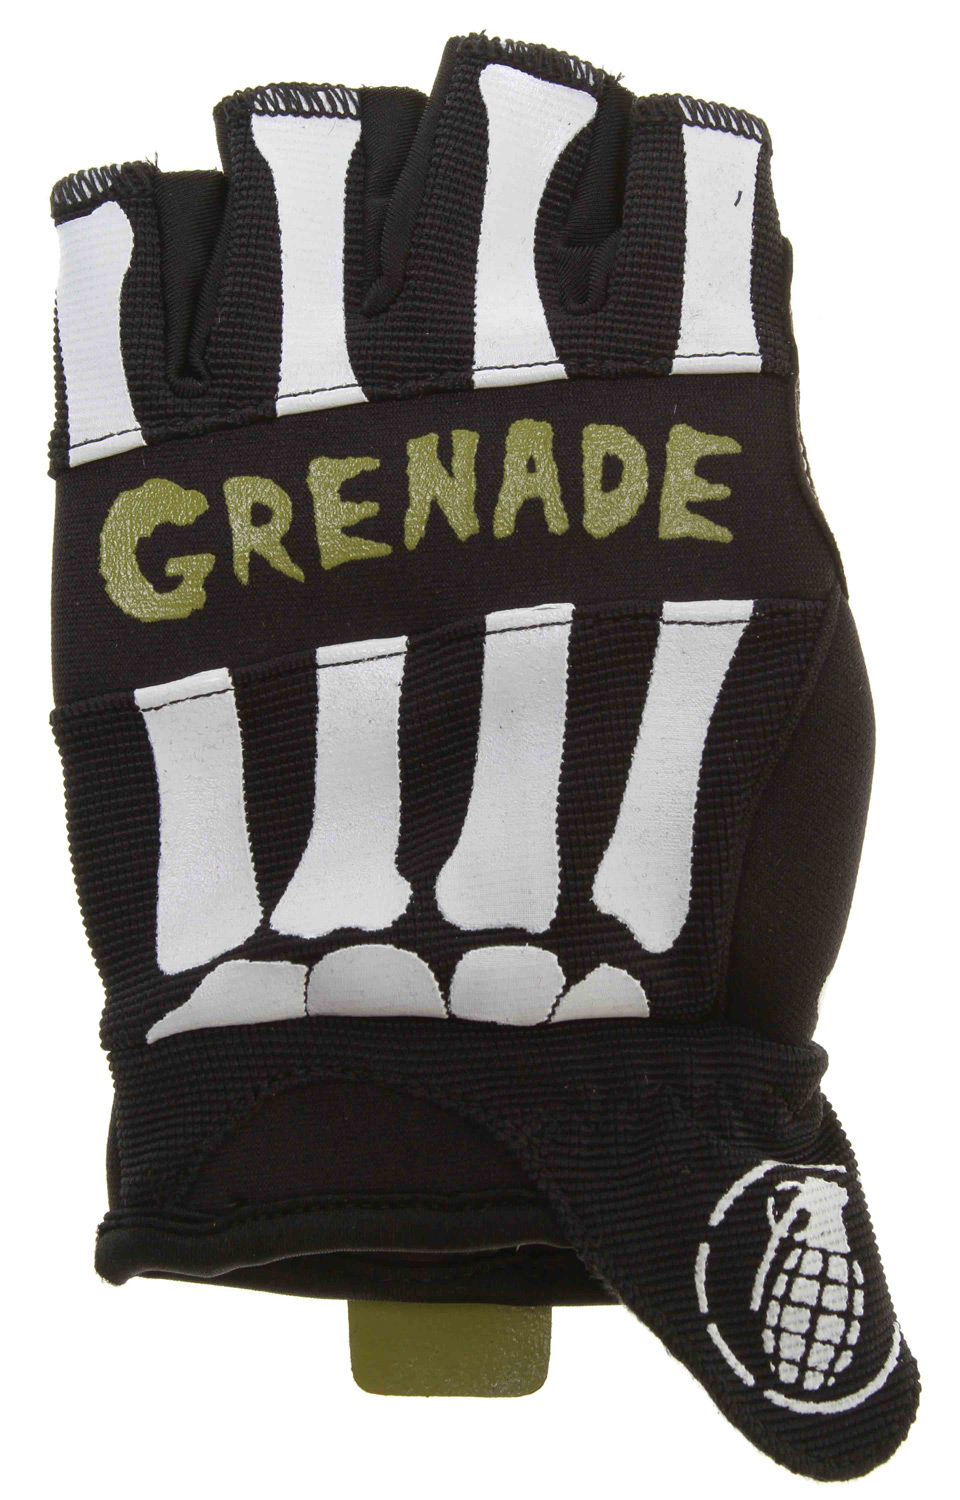 MTB Grenade Bender Fingerless Bike Gloves Black/Lime - $10.37